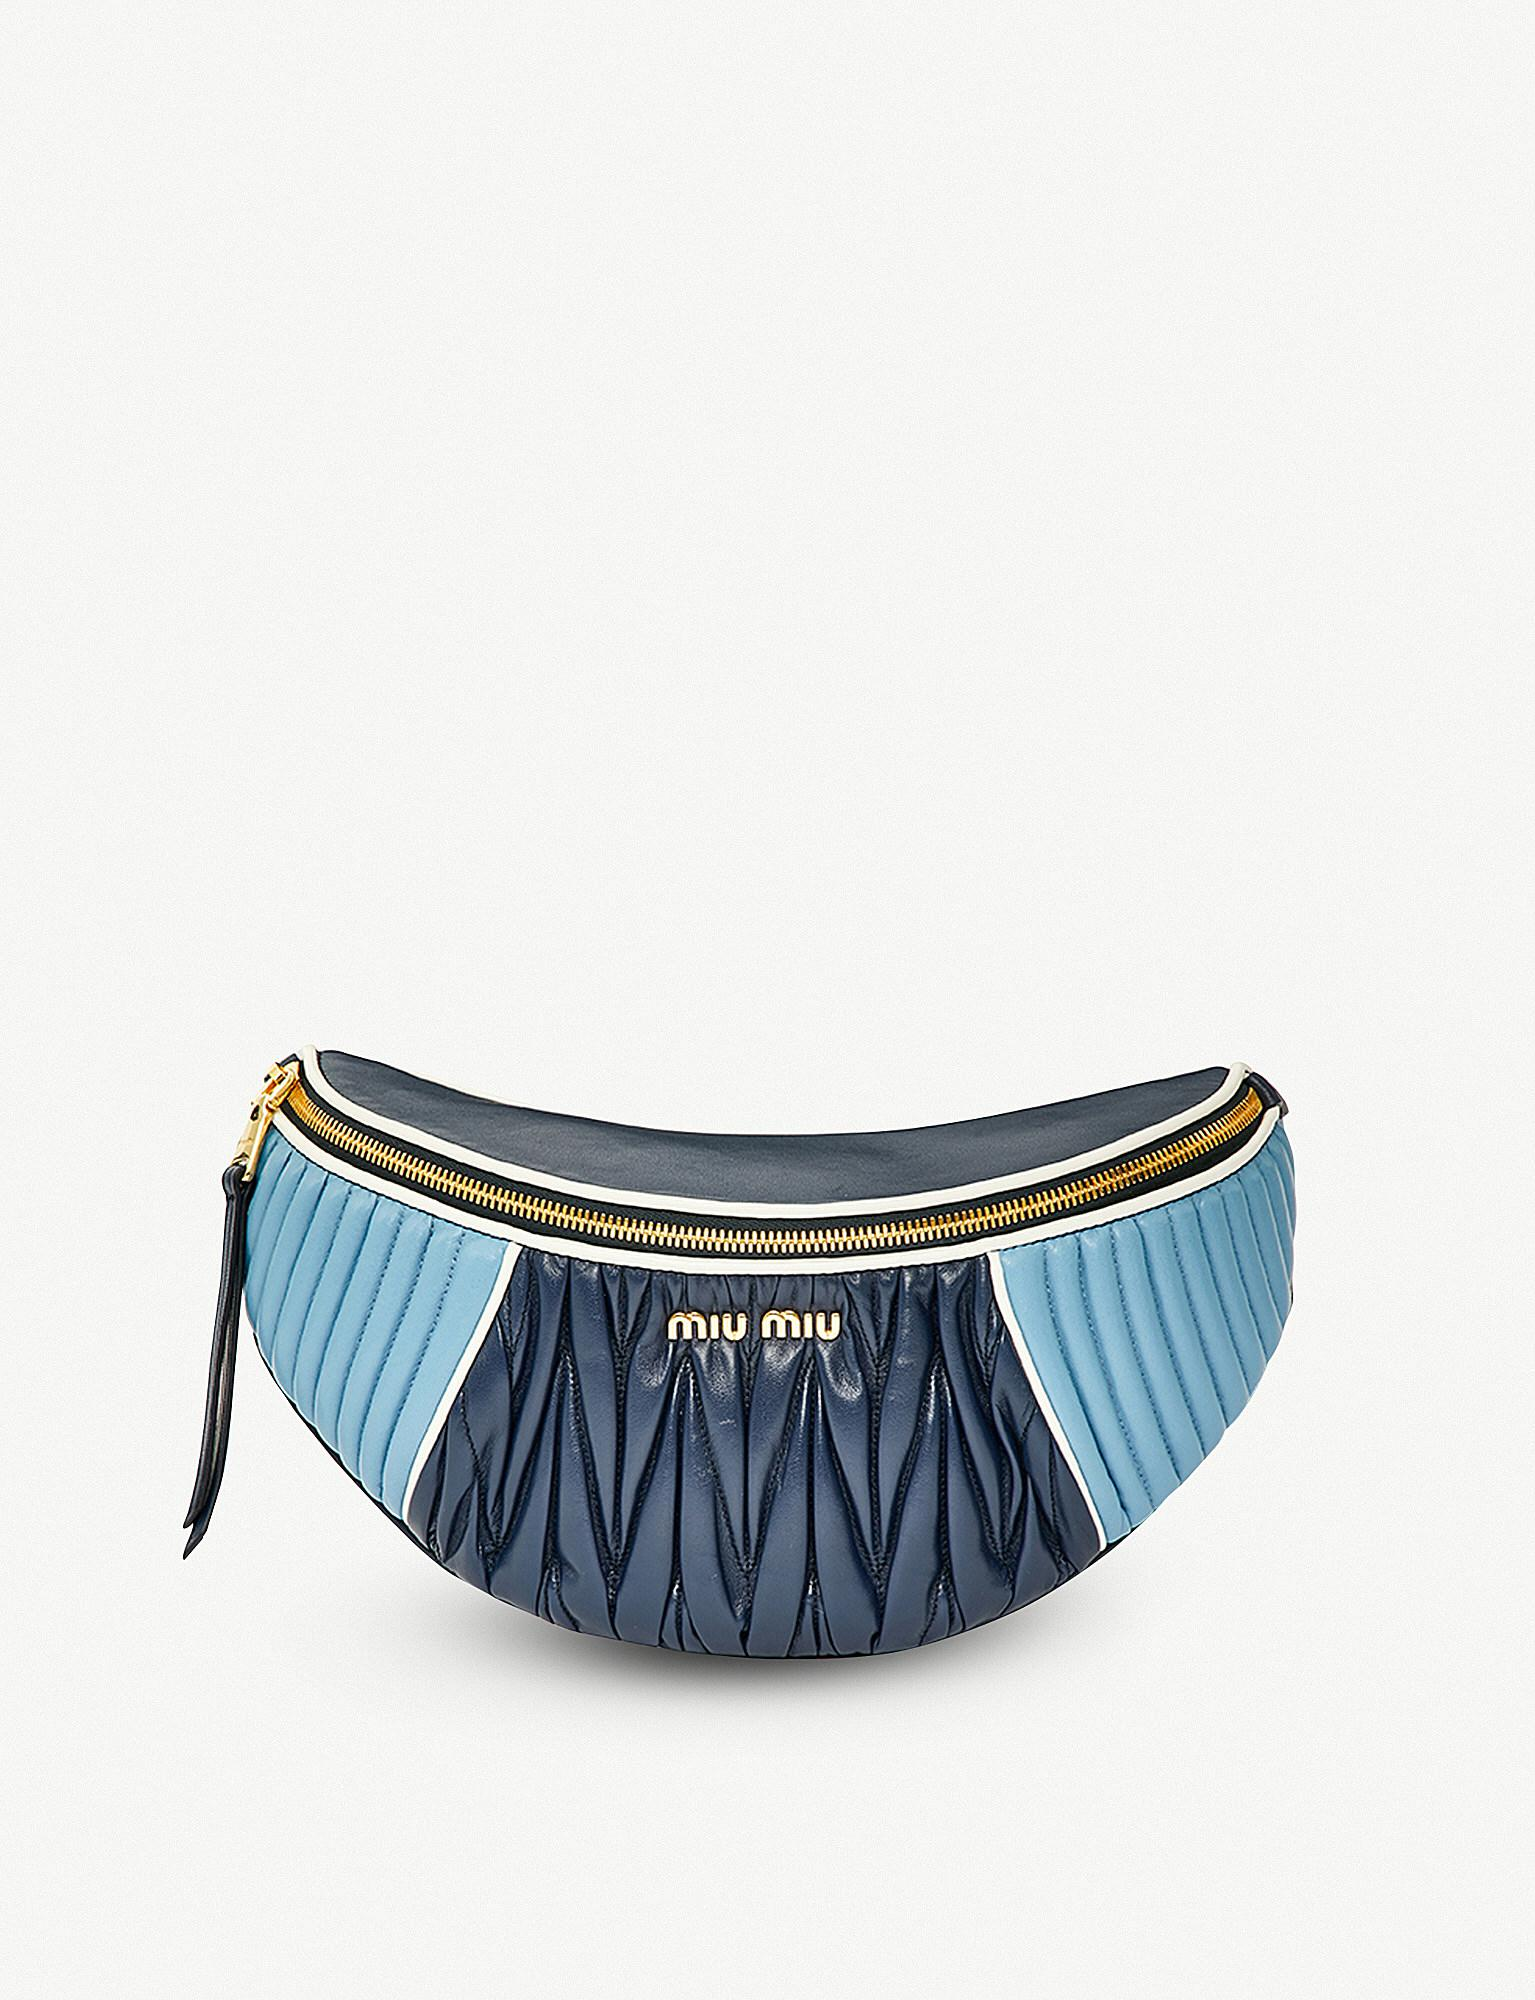 ba4072f4ba54 Lyst - Miu Miu Two-tone Quilted Nappa-leather Belt Bag in Blue